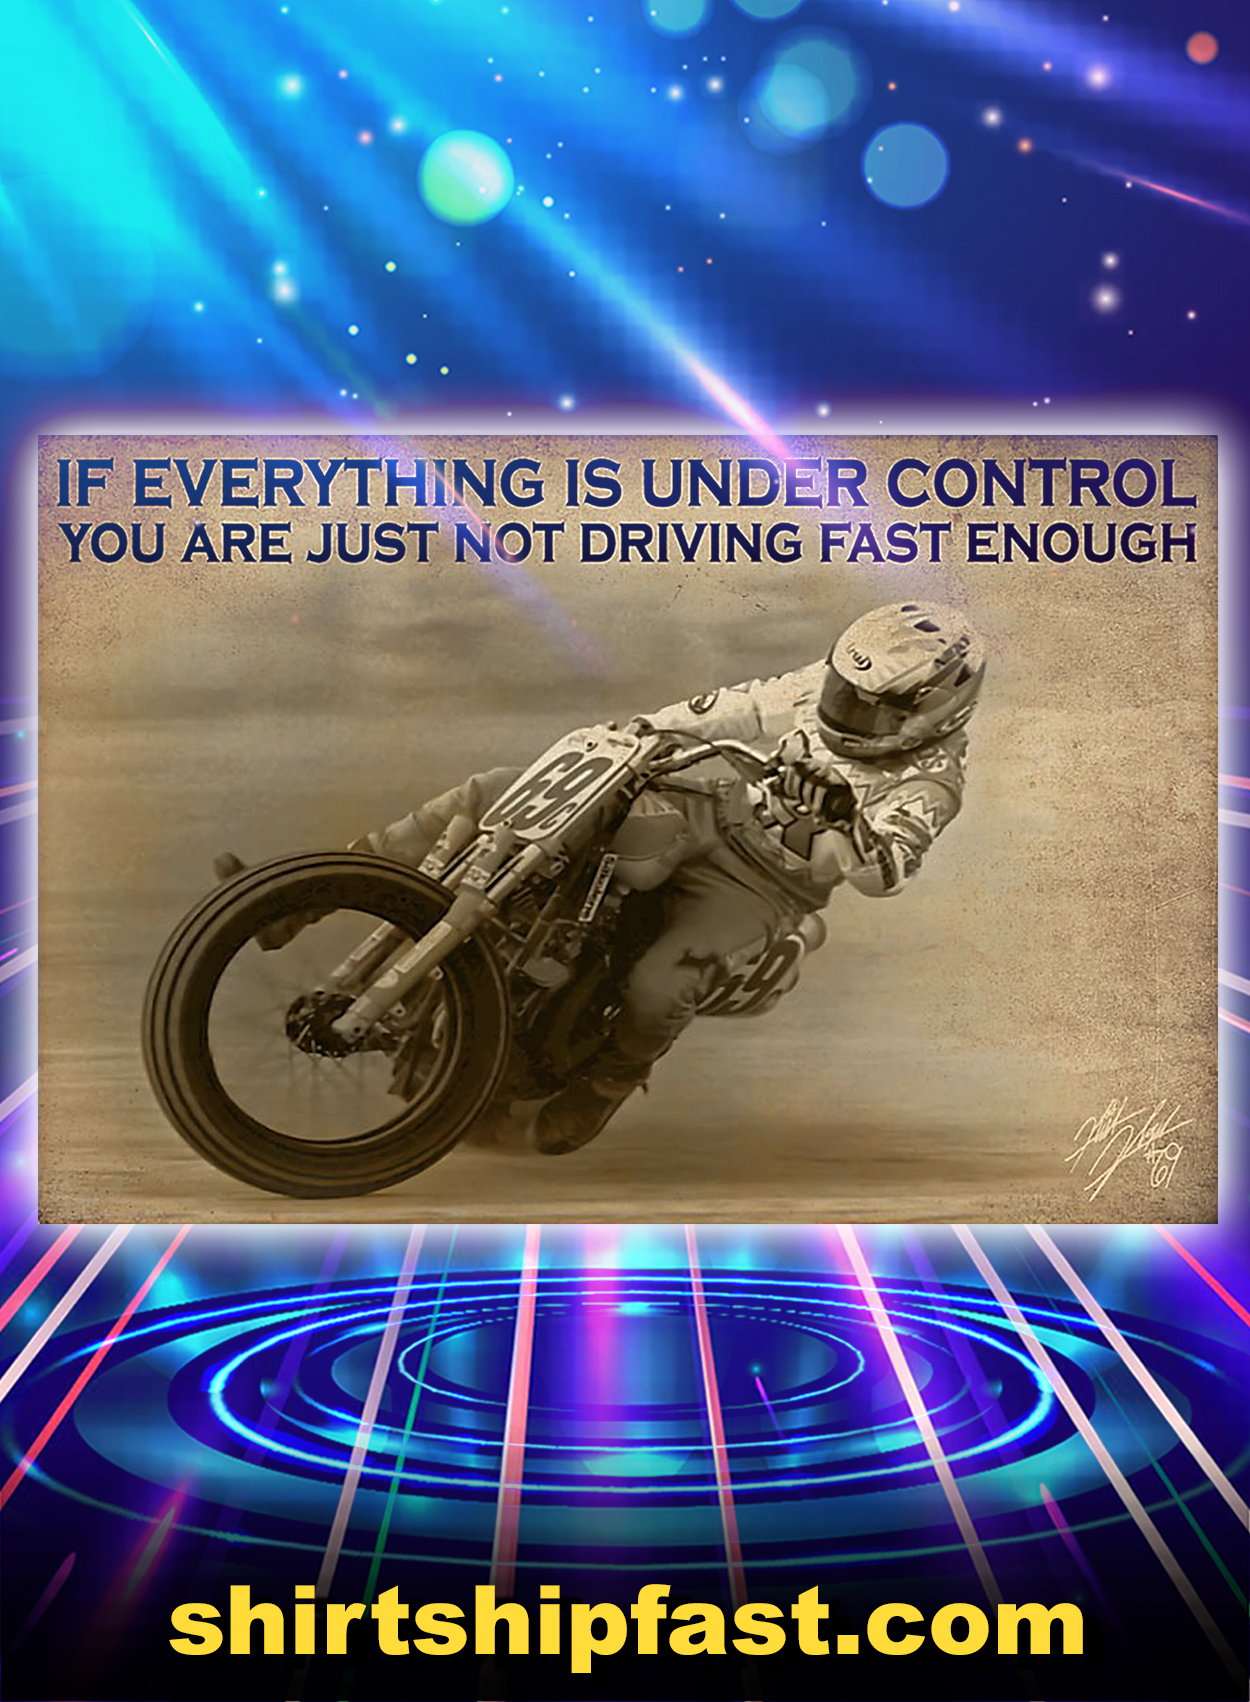 Motor racing if everything is under control you are just not driving fast enough poster - A2